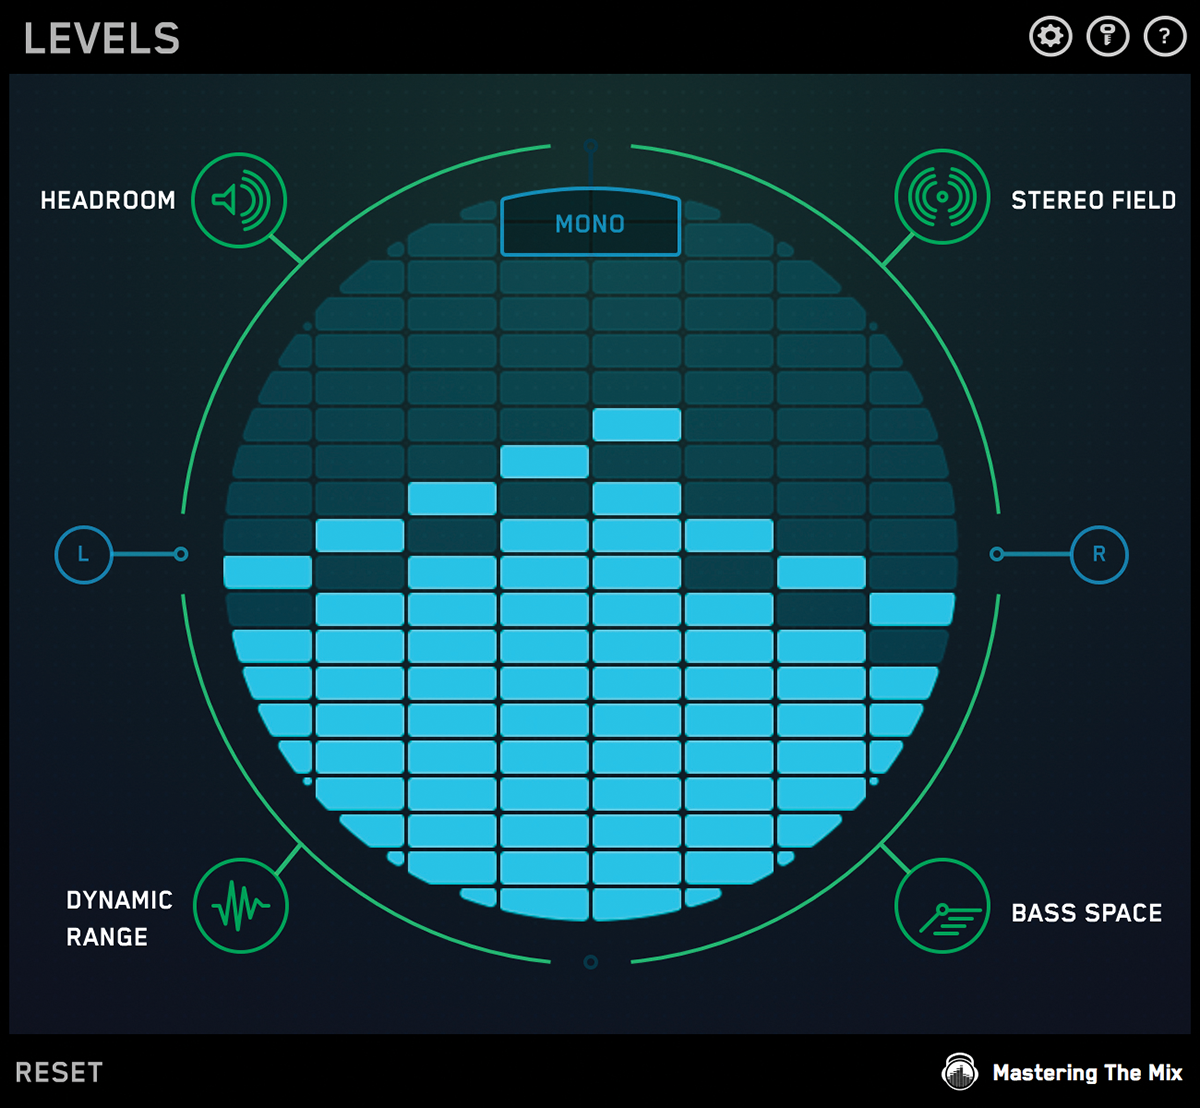 LEVELS Zoomed